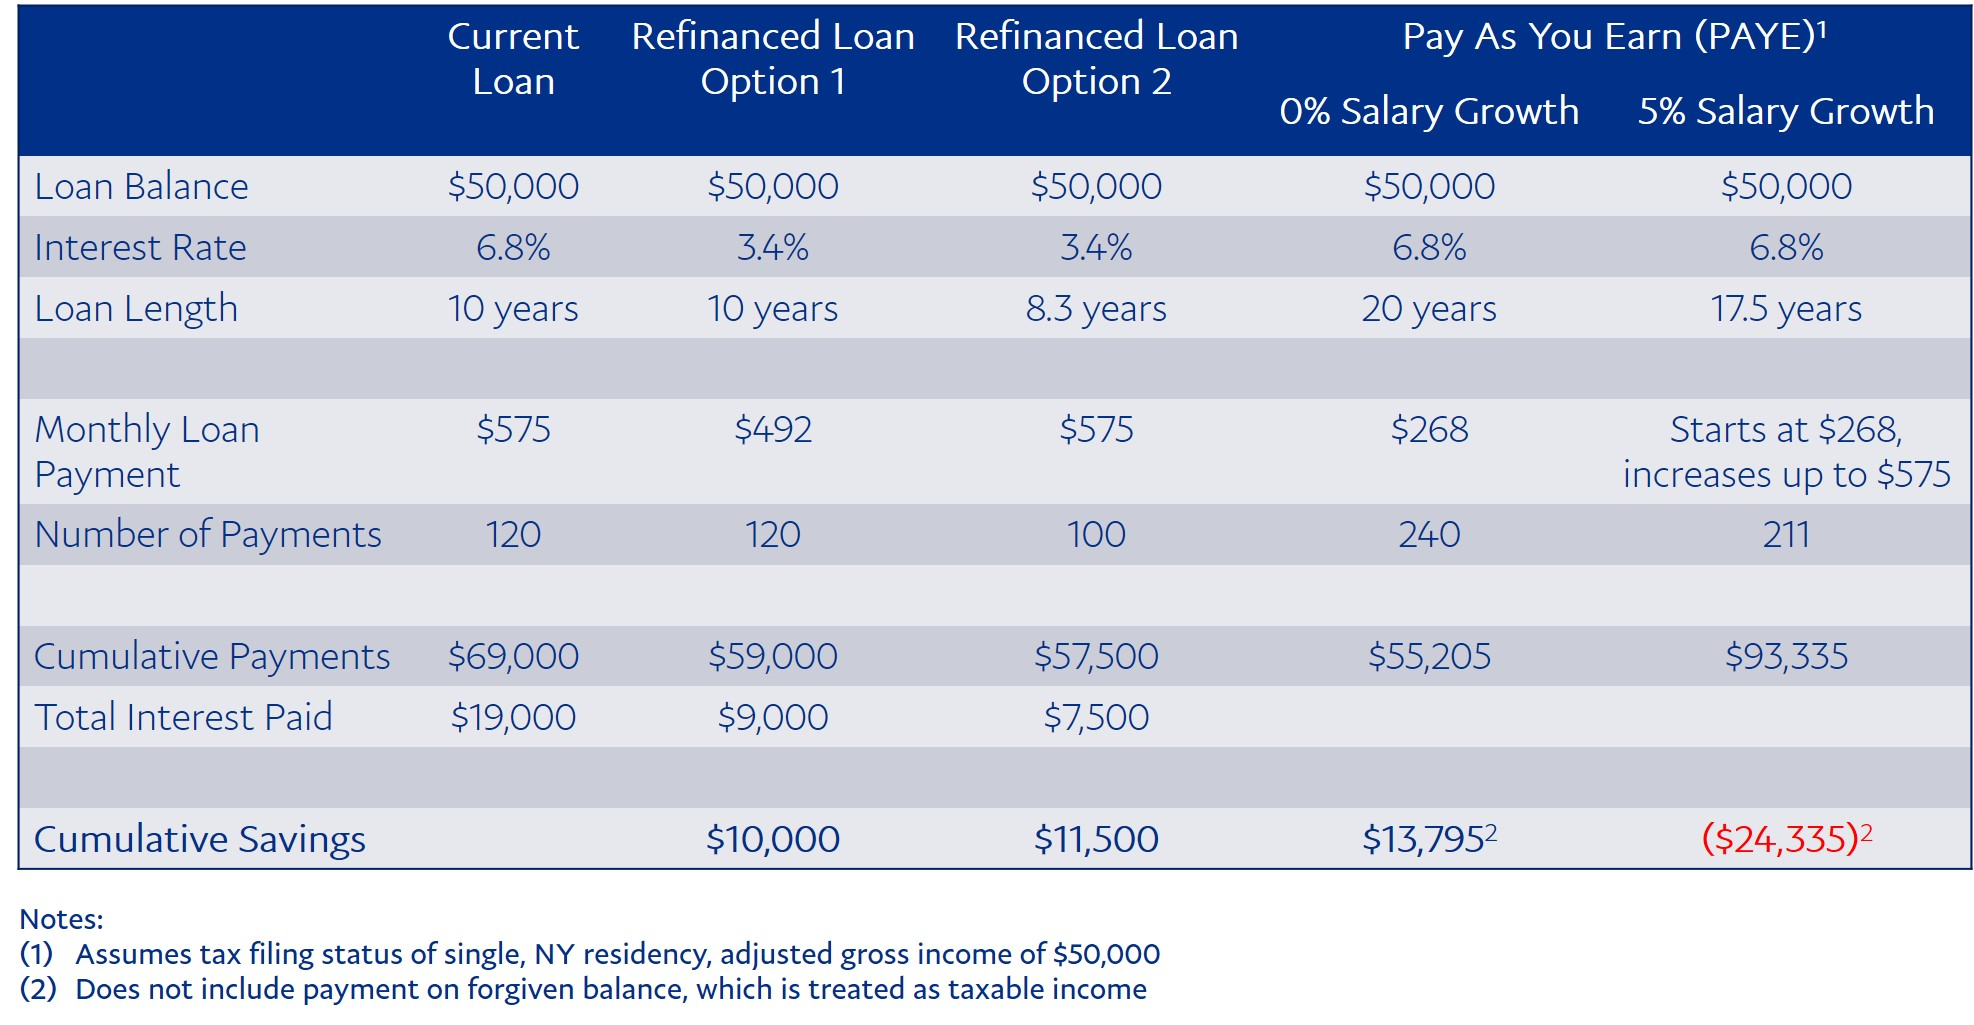 The savings opportunity of the Pay As You Earn (PAYE) income-driven repayment option will heavily depend on the salary growth assumption used.